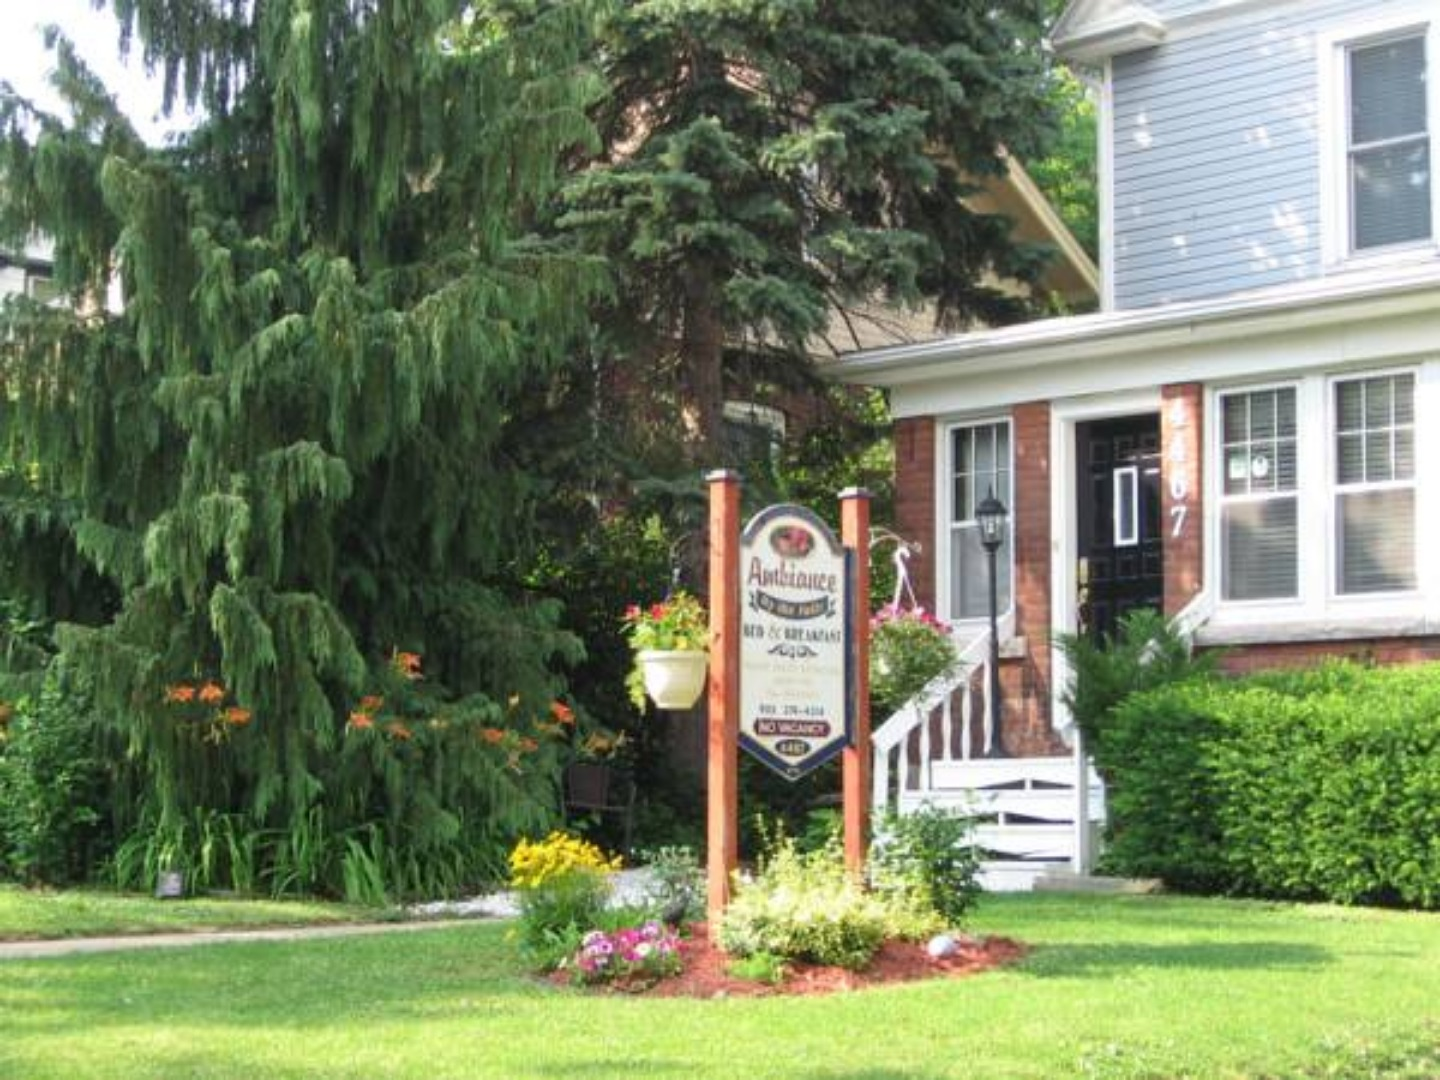 A tree in front of a building at Ambiance by the Falls Bed and Breakfast.